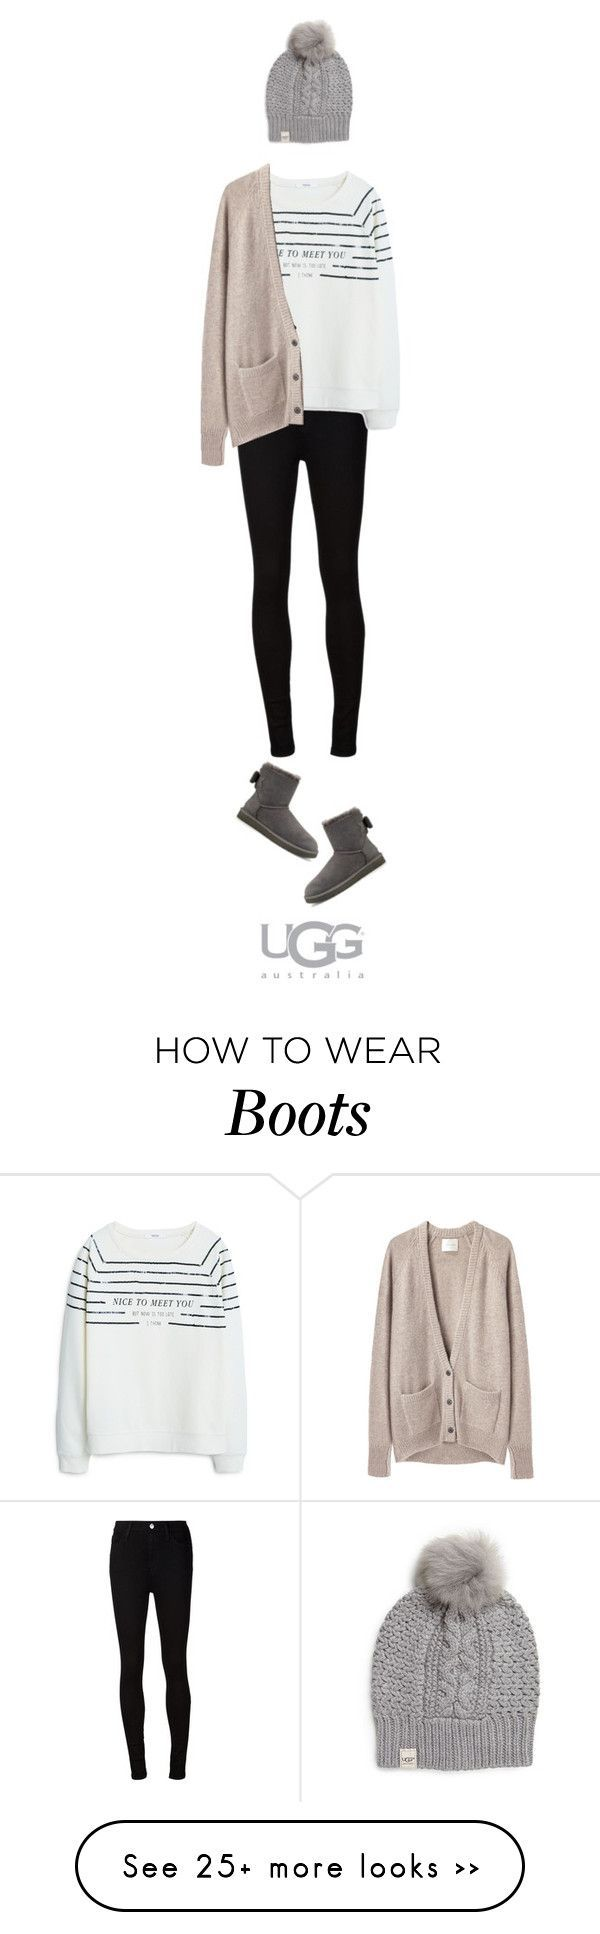 """""""Boot Remix with UGG : Contest Entry"""" by smileyface2299 on Polyvore featuring AG Adriano Goldschmied, UGG Australia, MANGO and La Garçonne Moderne"""